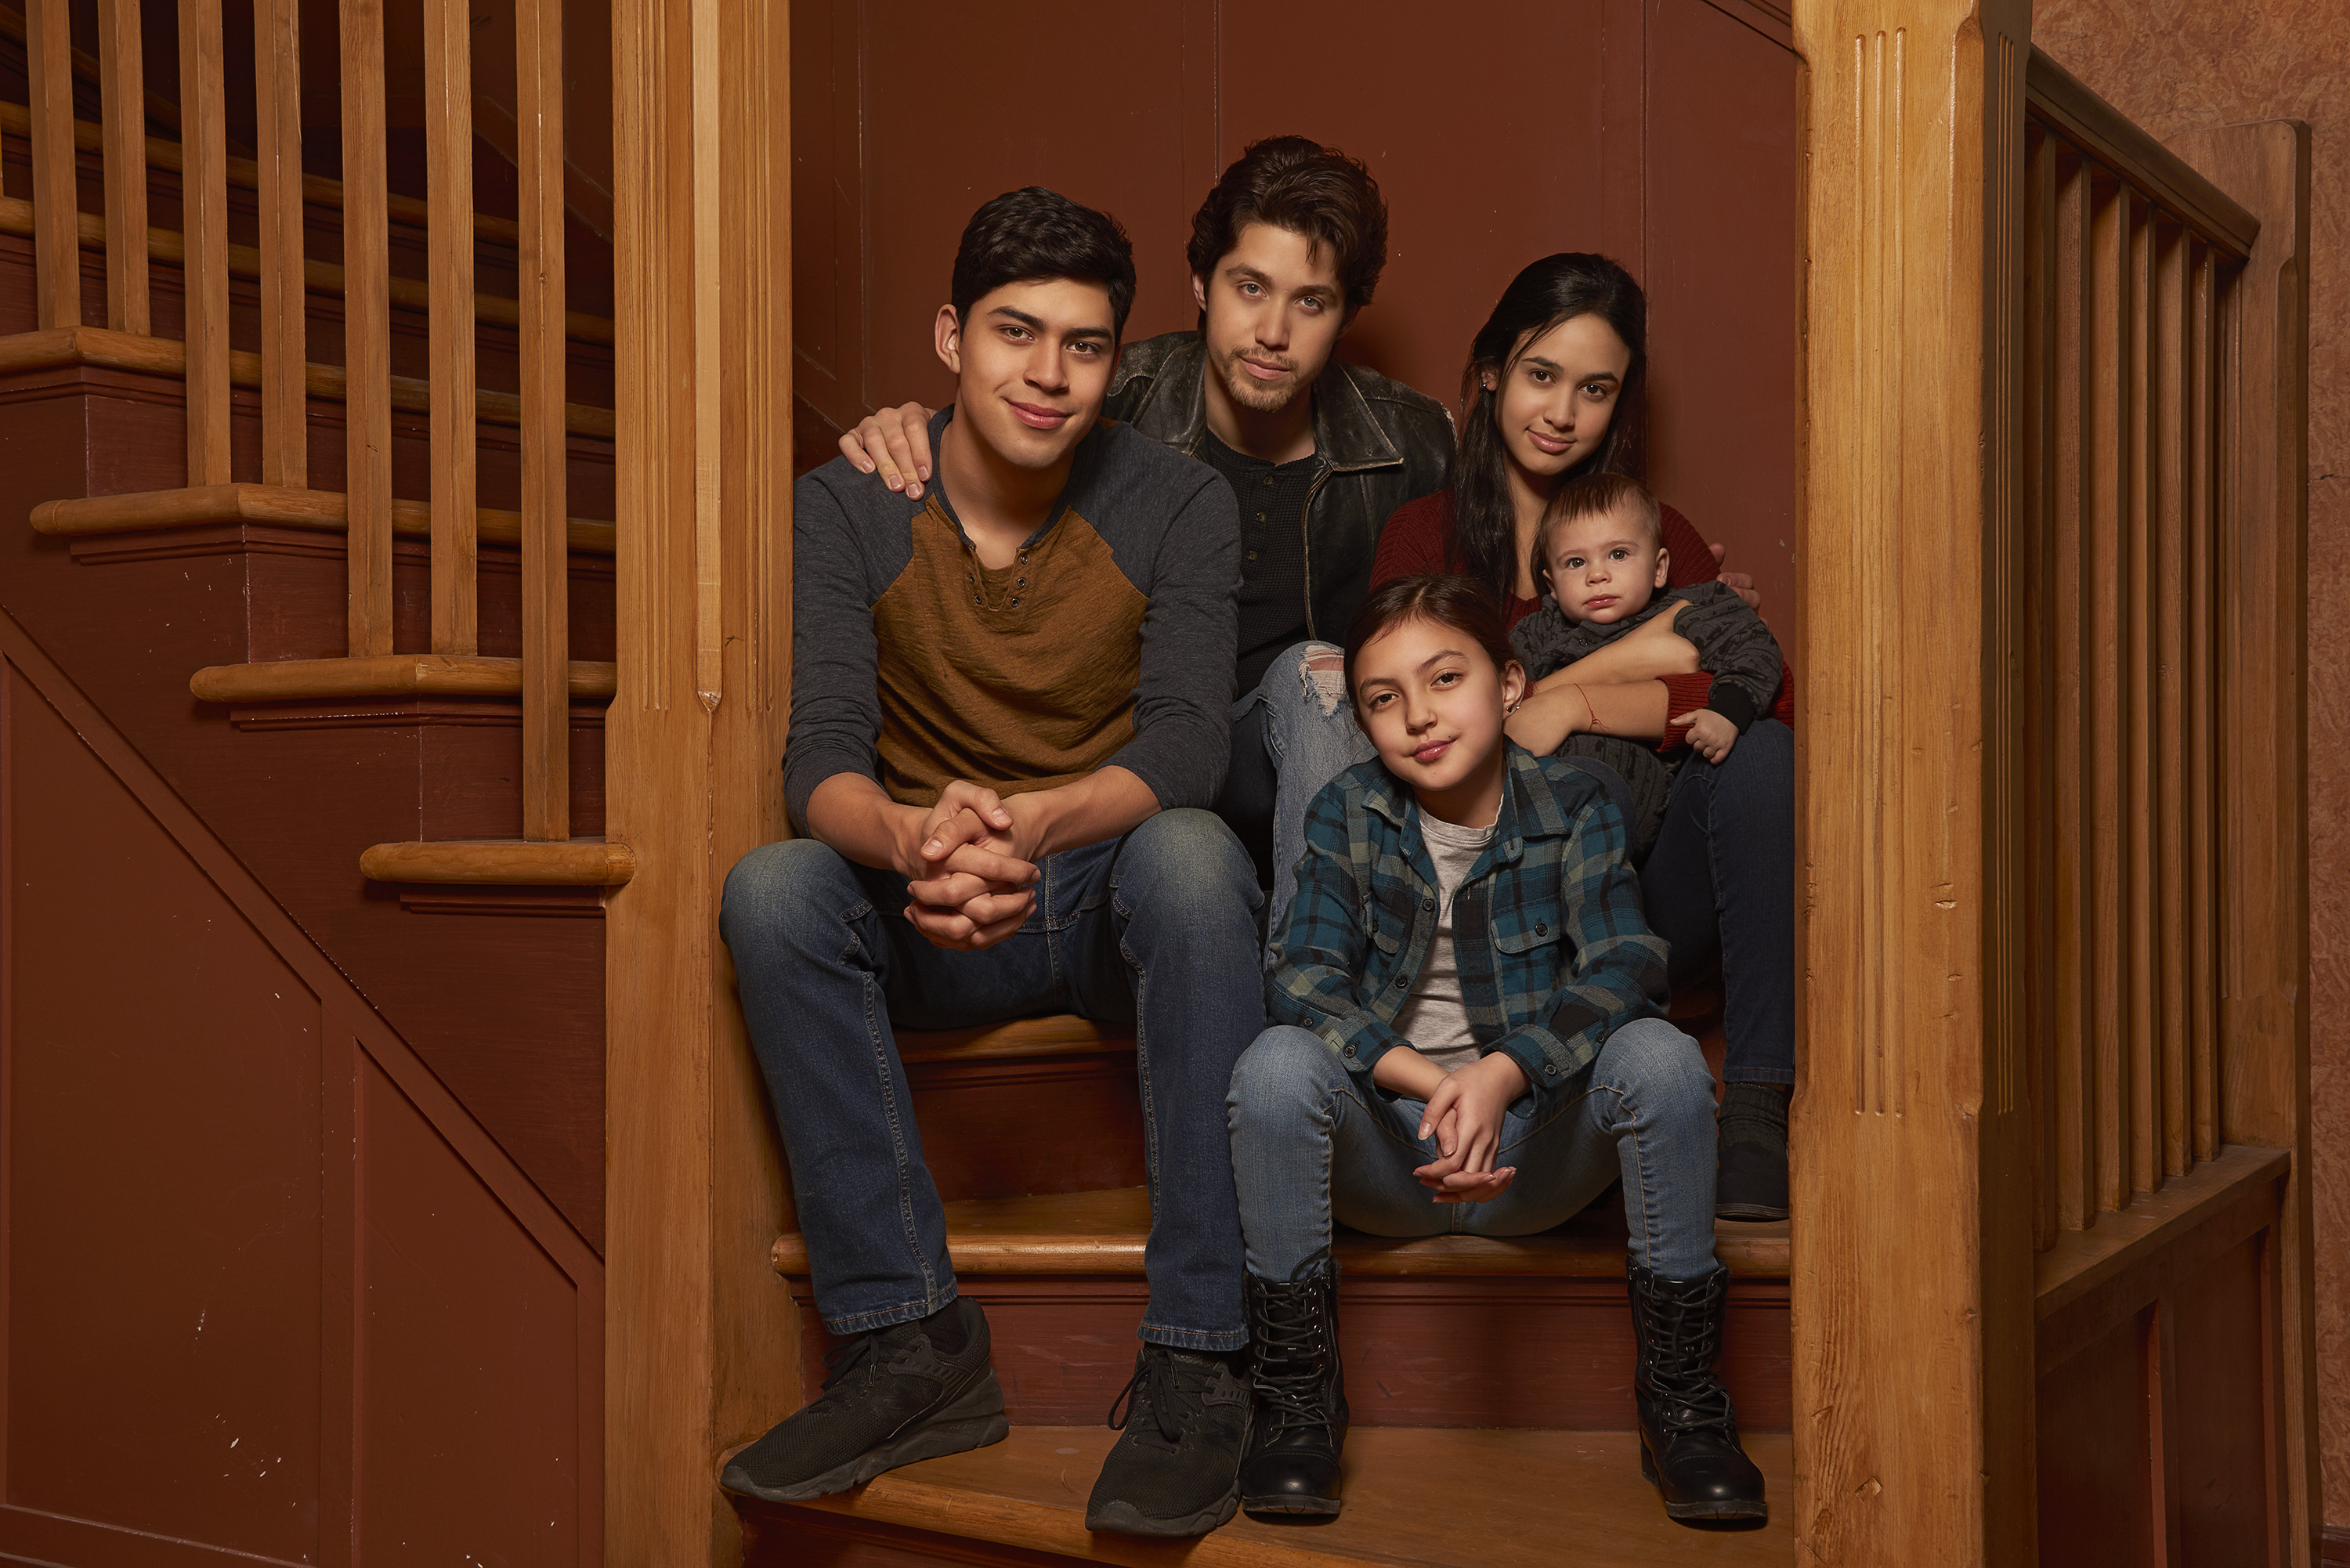 Watch the Emotional First Trailer for Freeform's 'Party of Five' Reboot Featuring a Latino Cast